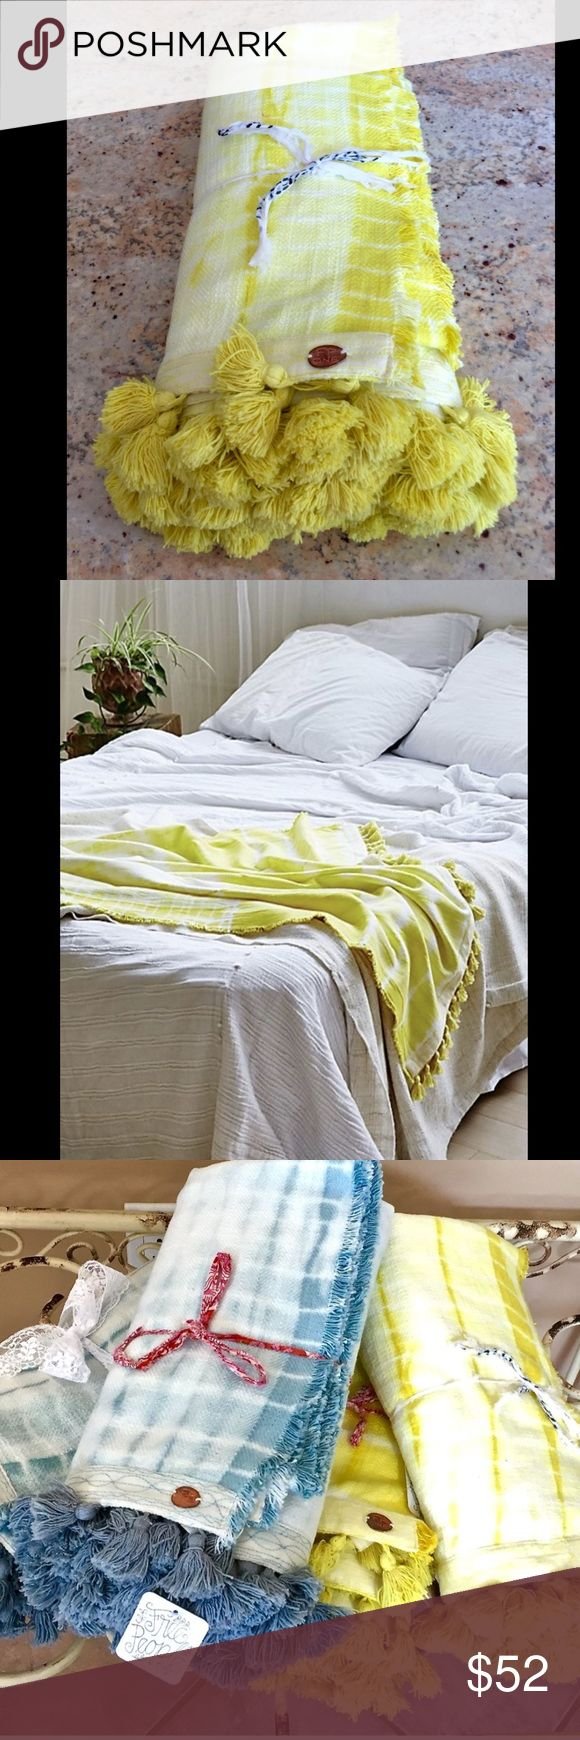 """Free People yellow Large BeachTowel Blanket Throw Free People yellow white Tie Dye Extra Large Beach Towel Blanket Throw Tassel Trim  Hand dyed super soft cotton beach towel / blanket / throw with tassel edging New With Tags    * due to the hand dyed technique, each towel will be slightly different   100% cotton  42""""W  x  62""""L Free People Accessories Scarves & Wraps"""